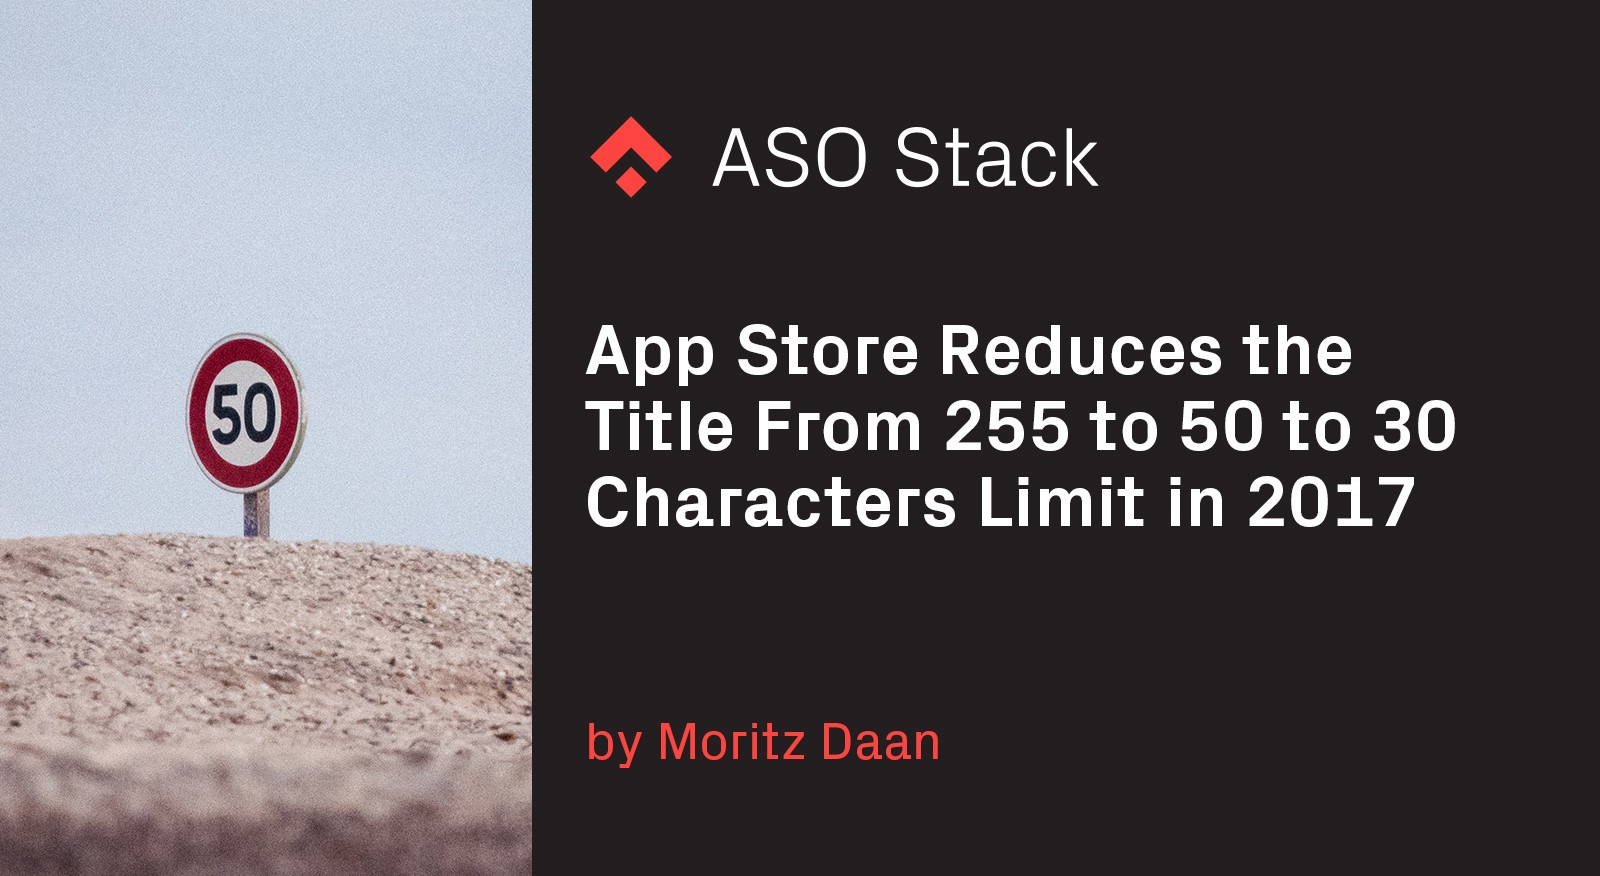 App Store reduces the title from 255 to 50 to 30 characters